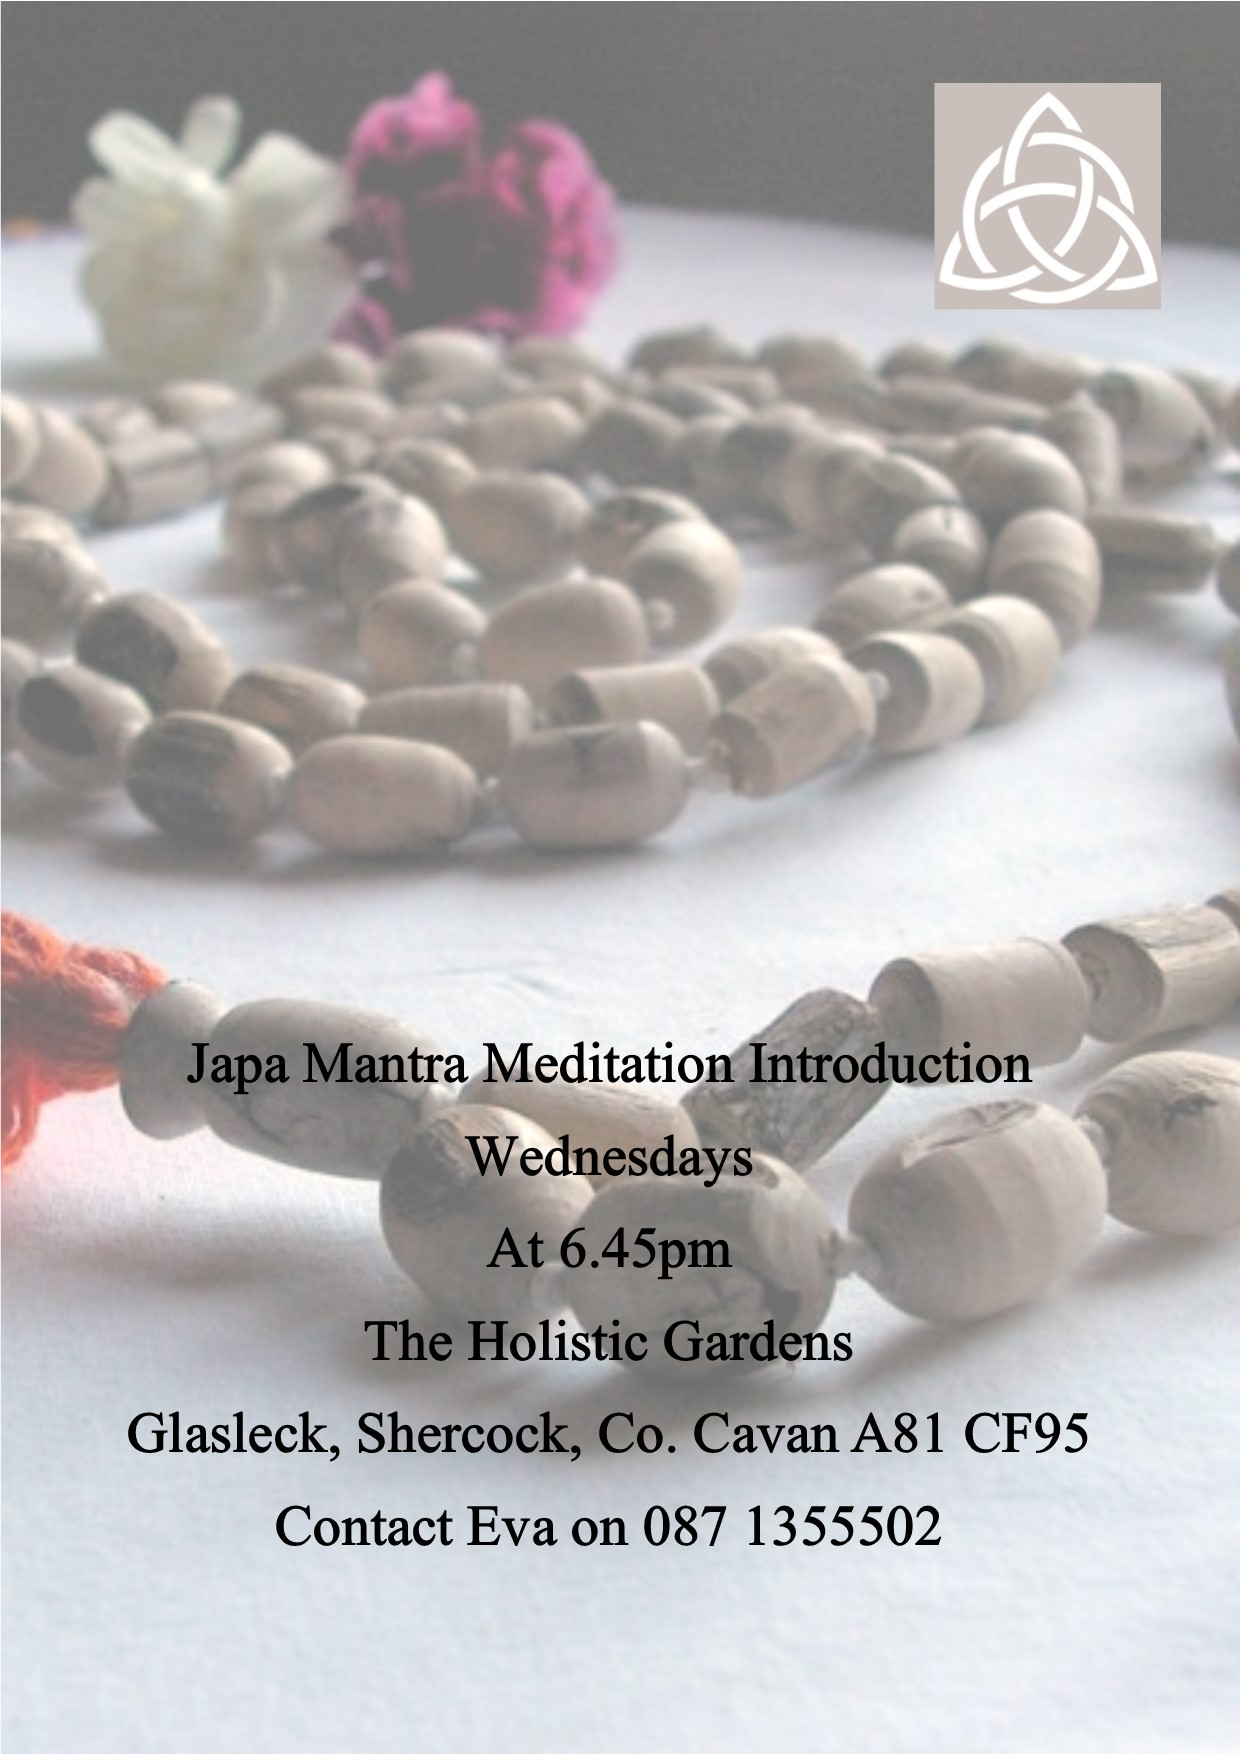 Introduction to Mantra Meditation